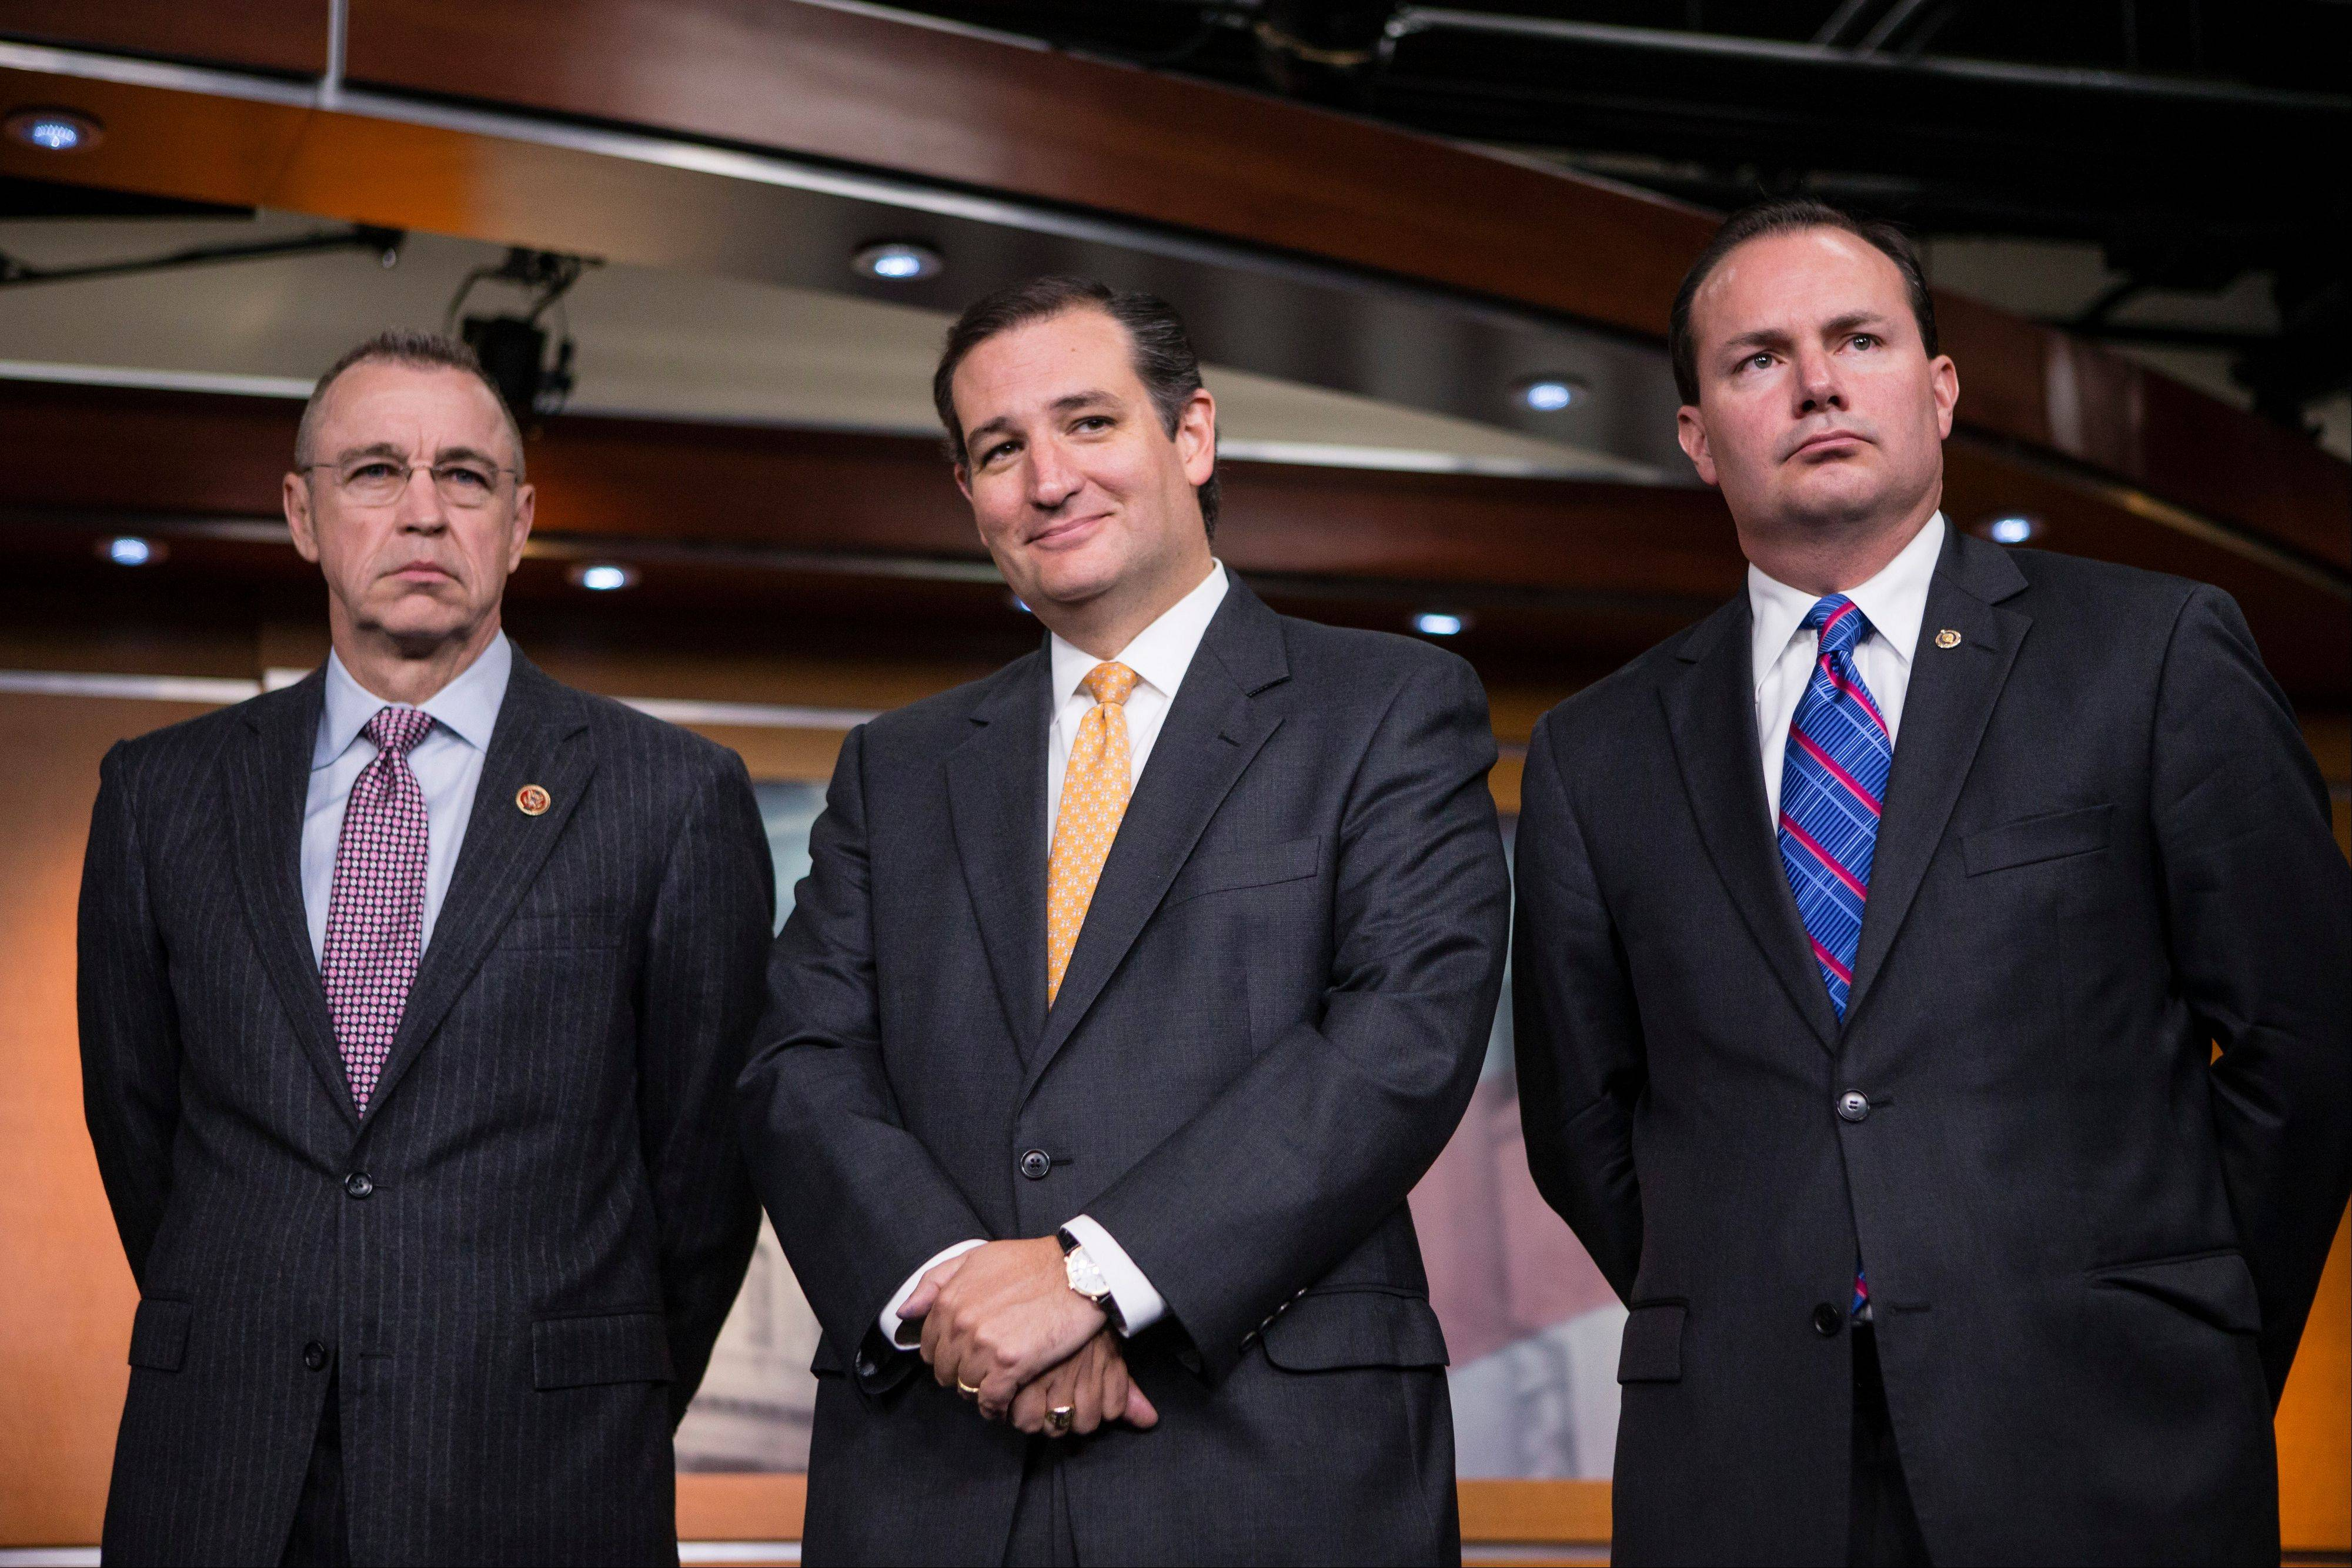 Sen. Ted Cruz, R-Texas, center, smiles during a news conference with conservative Congressional Republicans who persuaded the House leadership to include defunding the Affordable Care Act as part of legislation to prevent a government shutdown, at the Capitol in Washington, Thursday, Sept. 19, 2013. Sen. Cruz is flanked by Rep. Matt Salmon, R-Ariz., left, and Sen. Mike Lee, R-Utah, right.